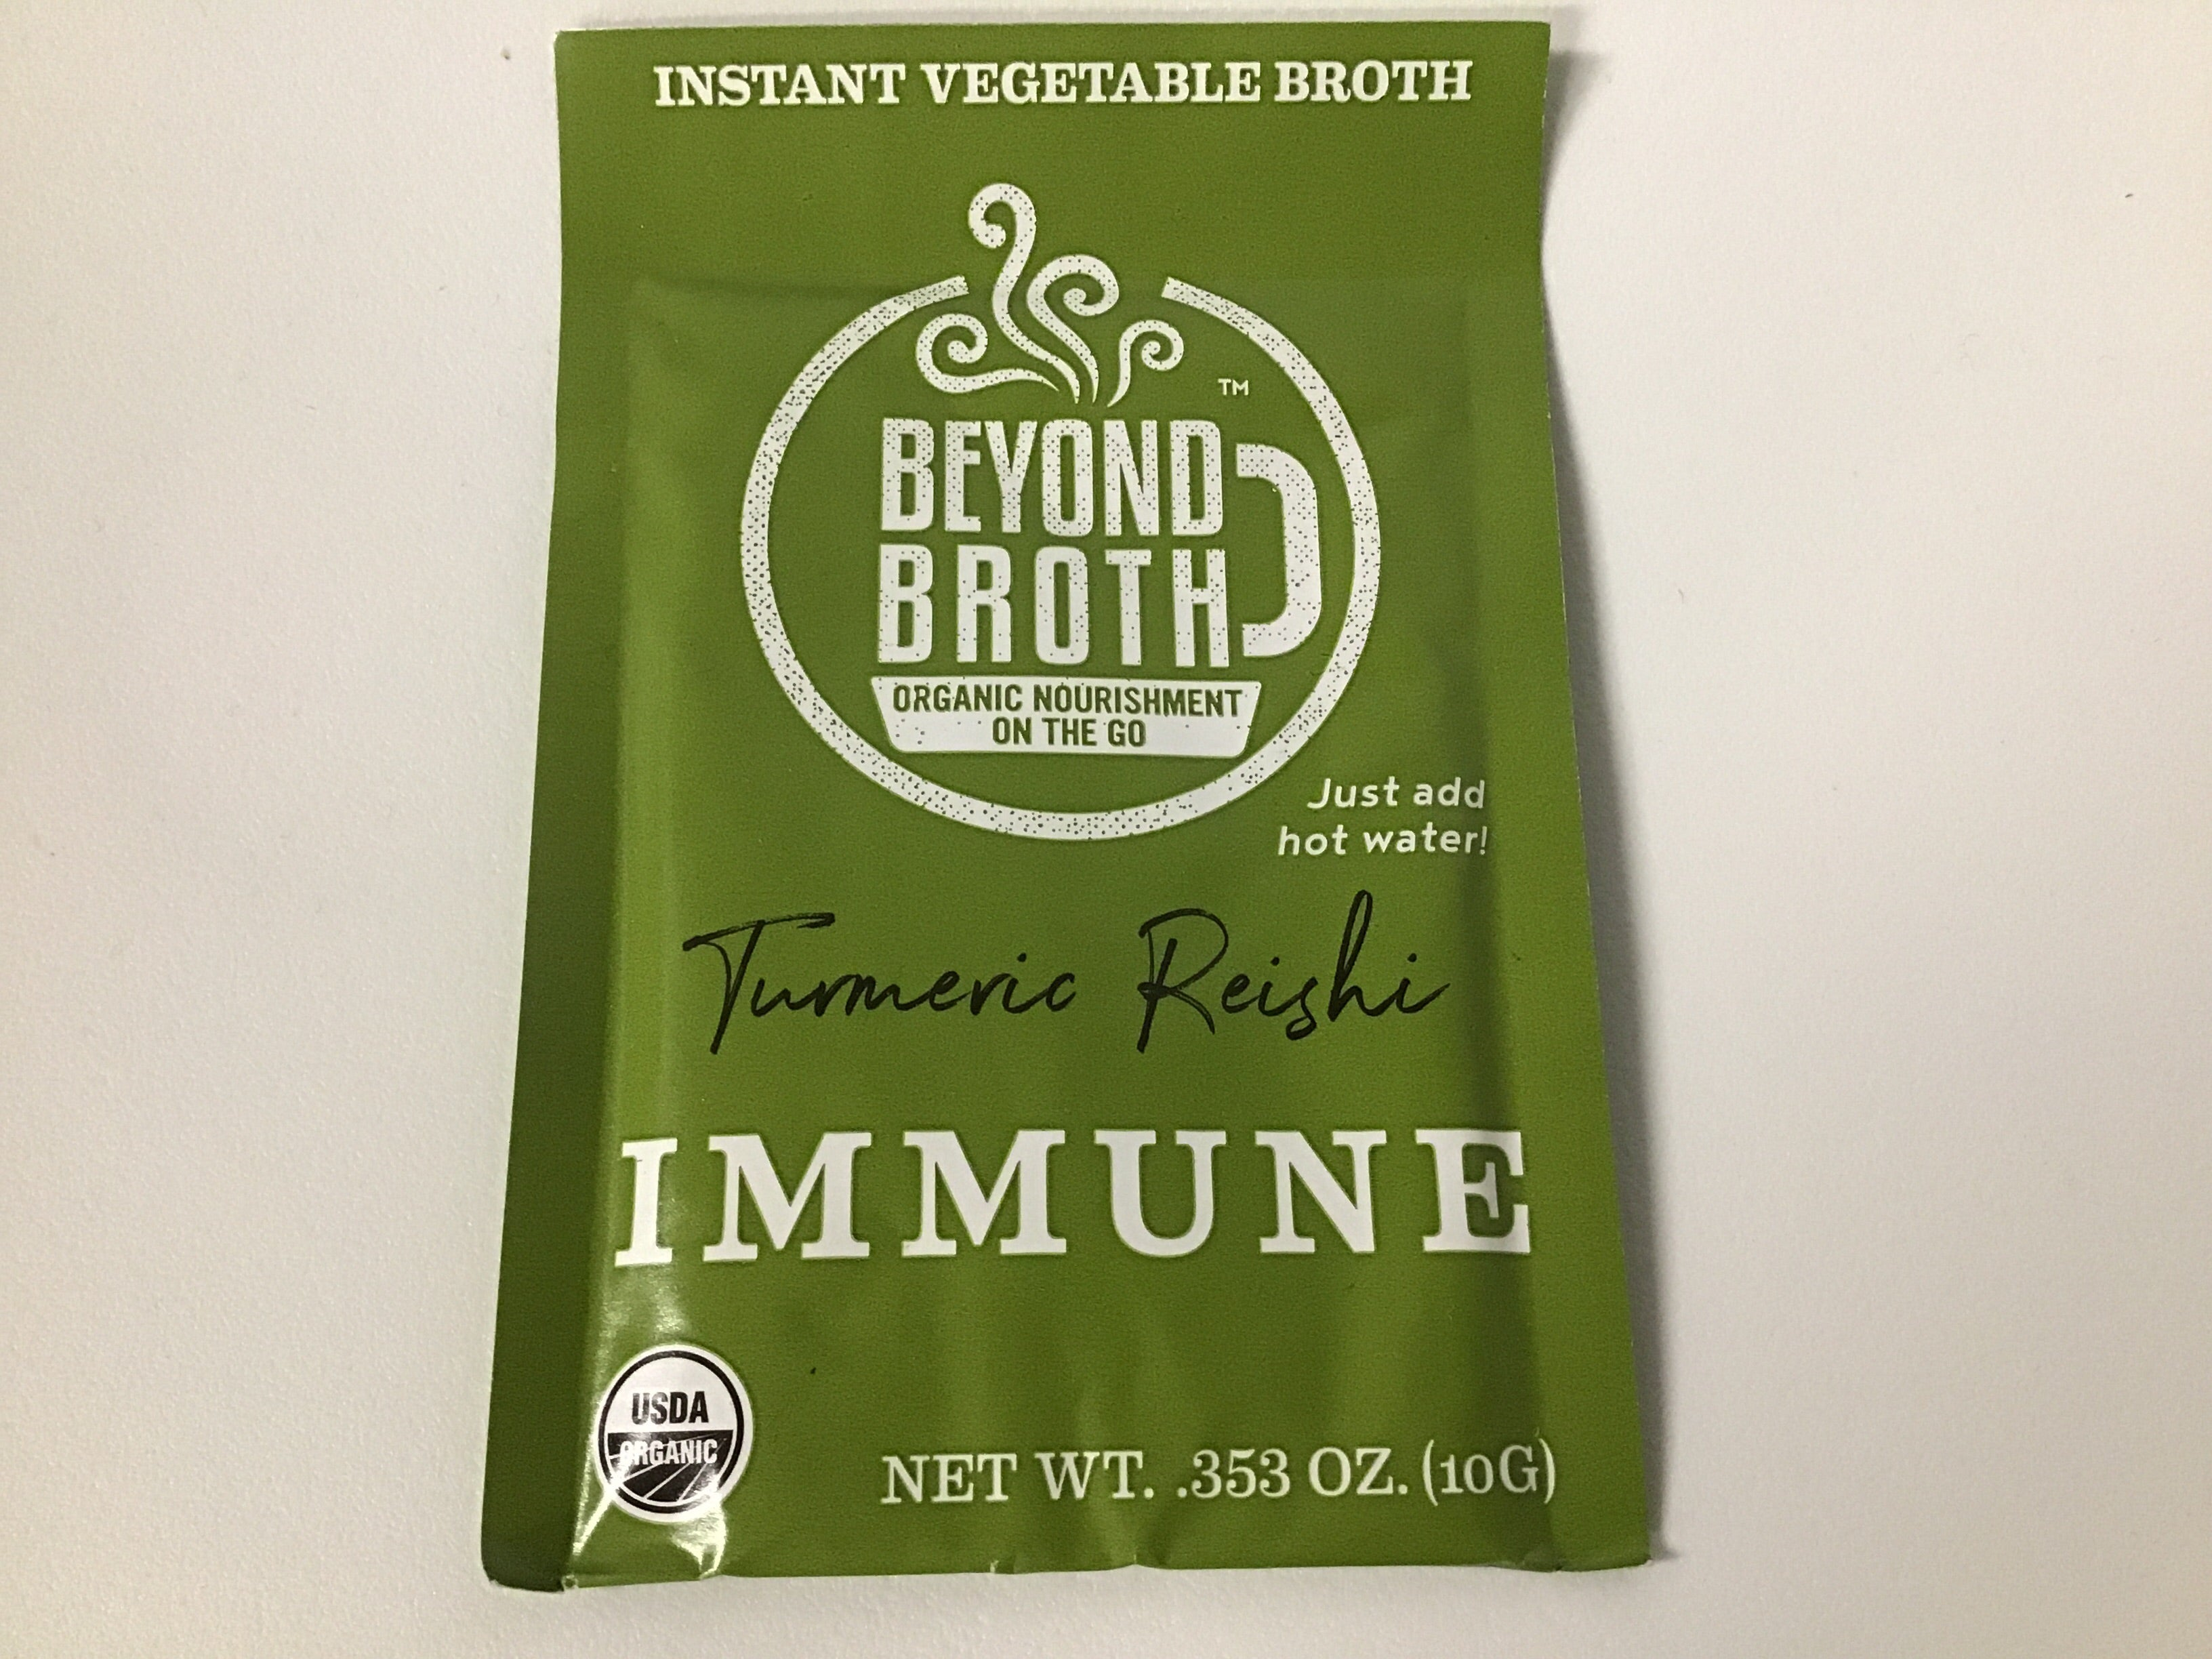 Beyond Broth - IMMUNE (Turmeric Reishi) Vegan Instant Broth